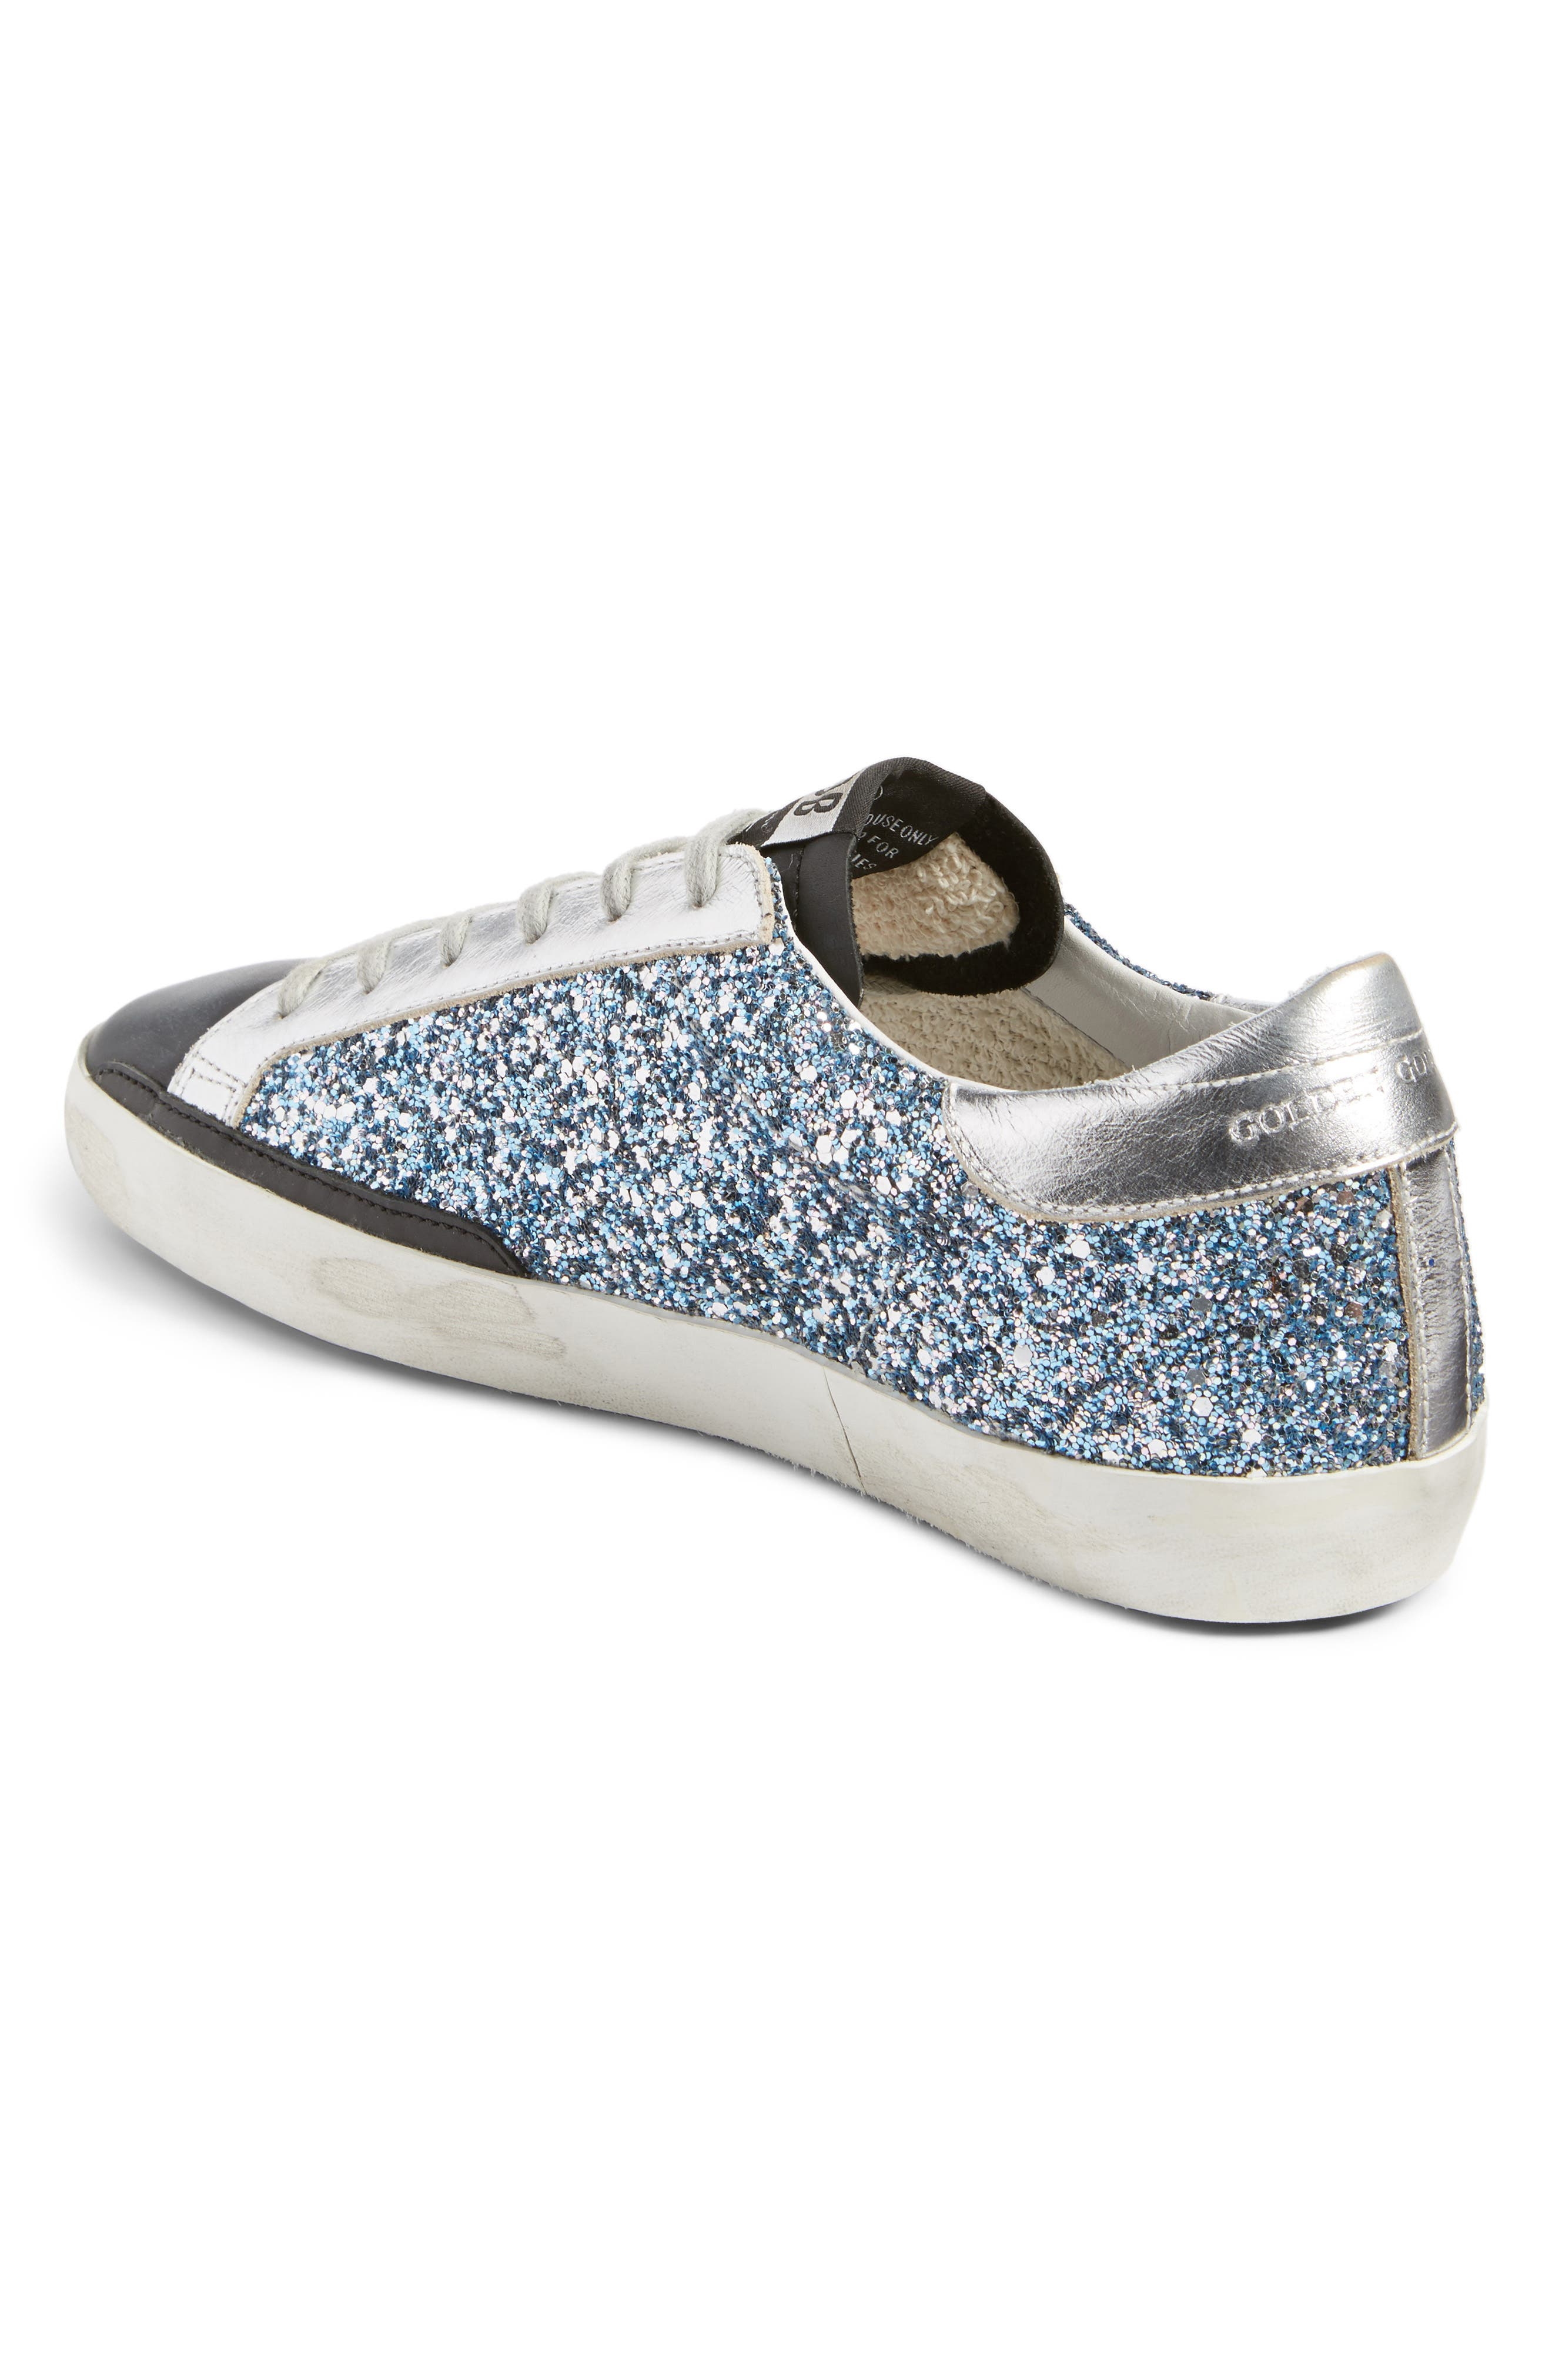 Superstar Glitter Sneaker,                             Alternate thumbnail 2, color,                             Blue Glitter